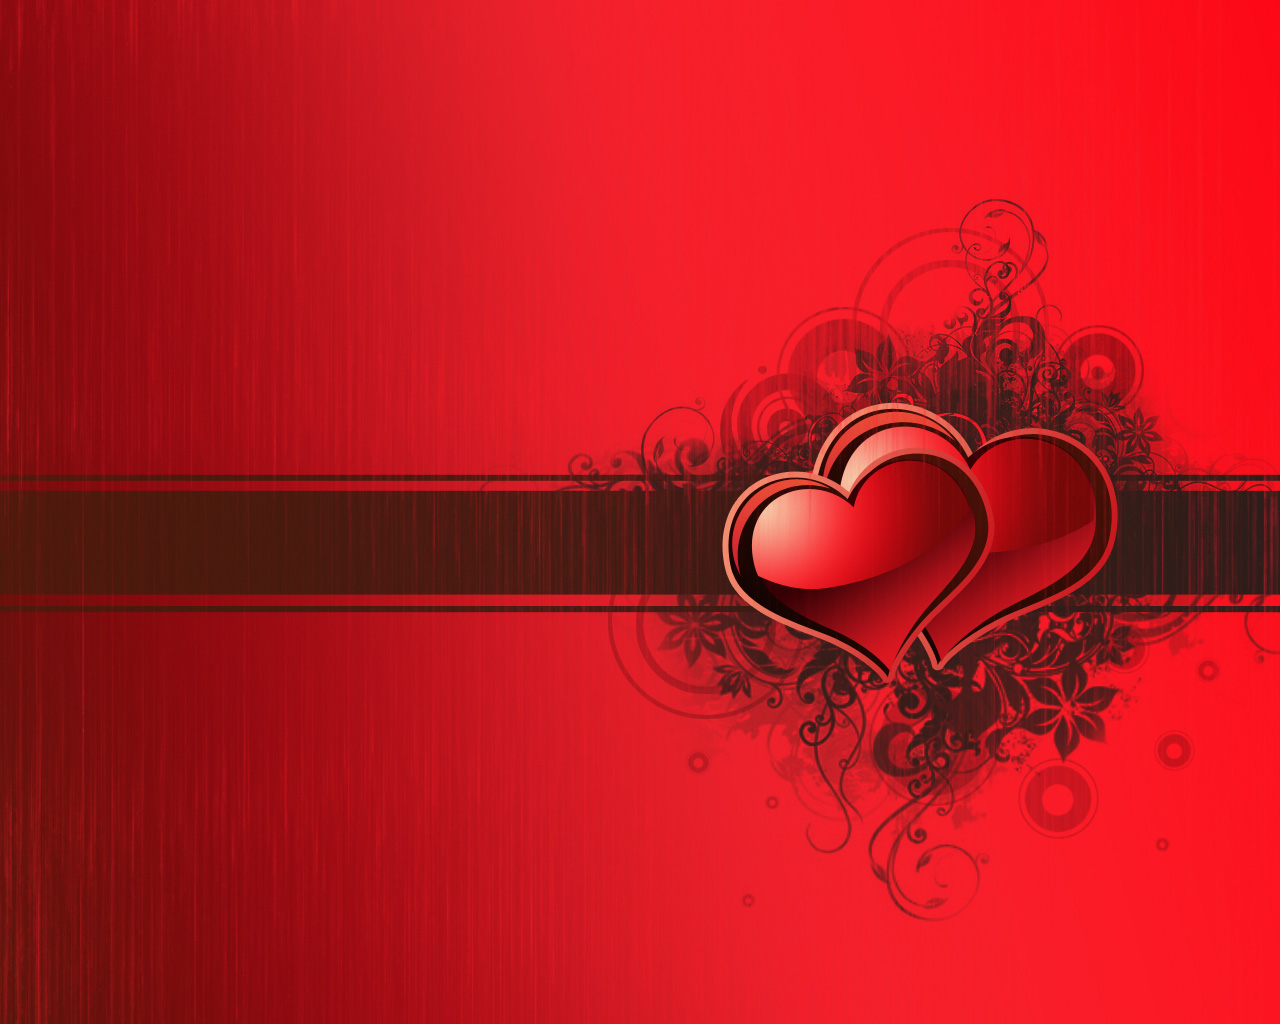 Valentines Day Wallpapers Of The RoseLove And Heart Get Amazing 1080Px Hd Love 2013 HD